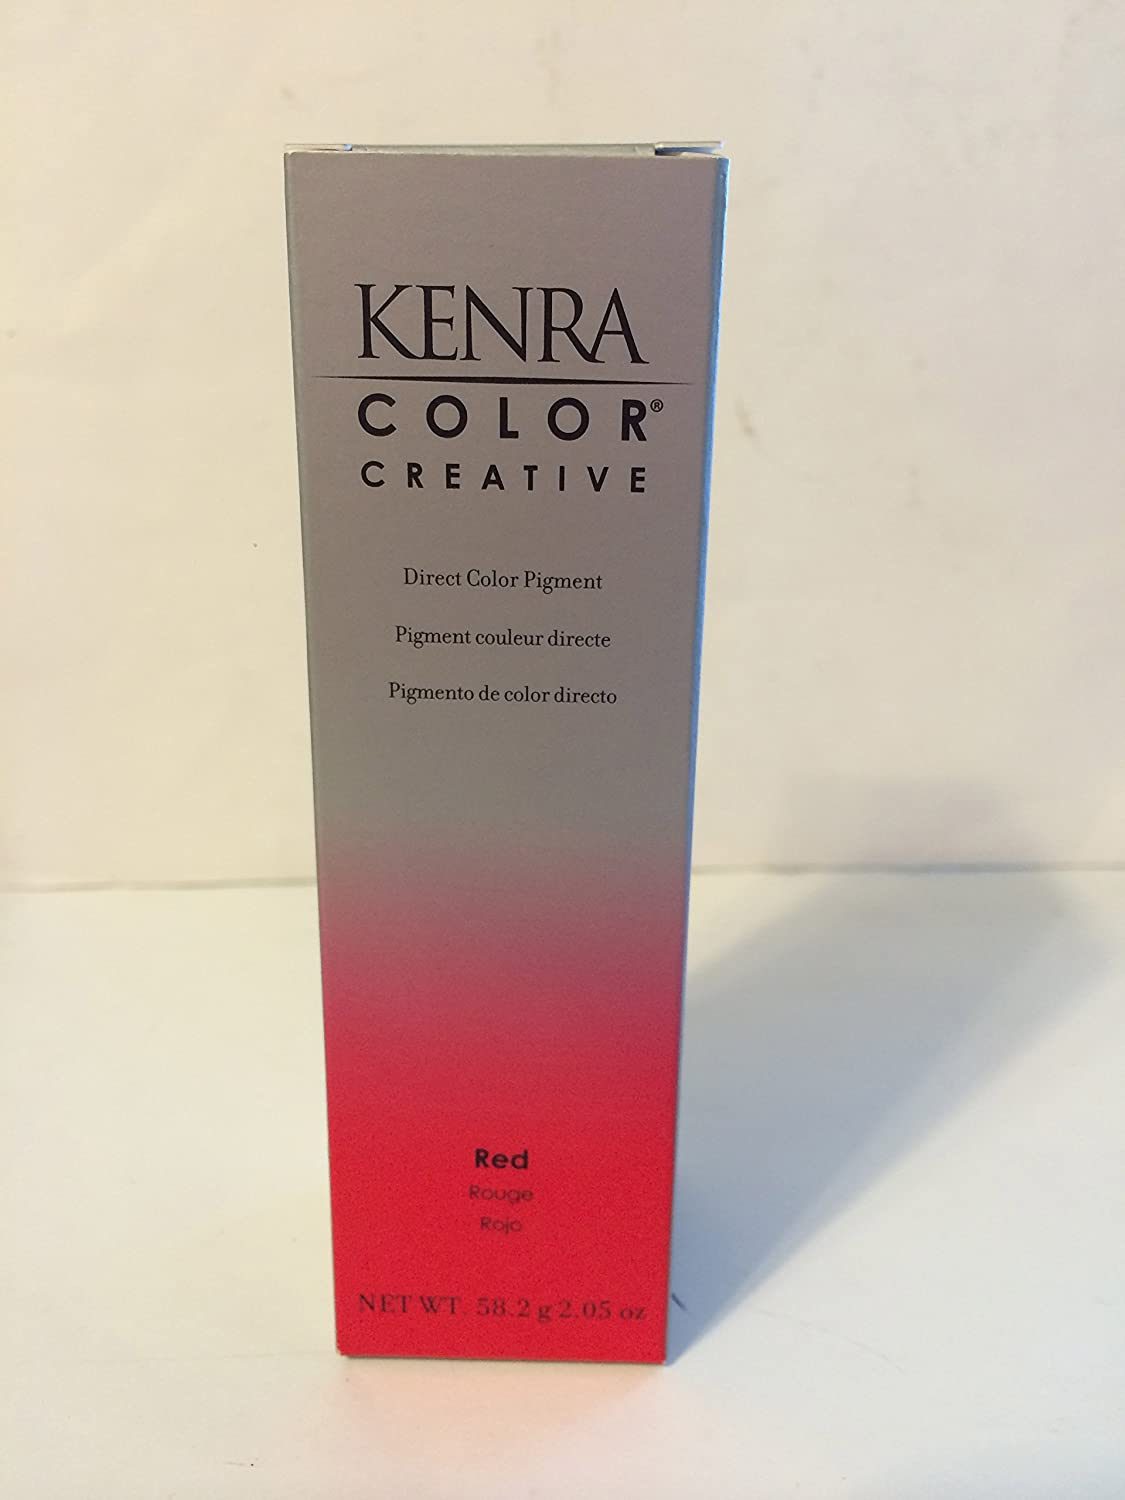 Kenra Color Creative Direct Color Pigment - RED 2.05 oz